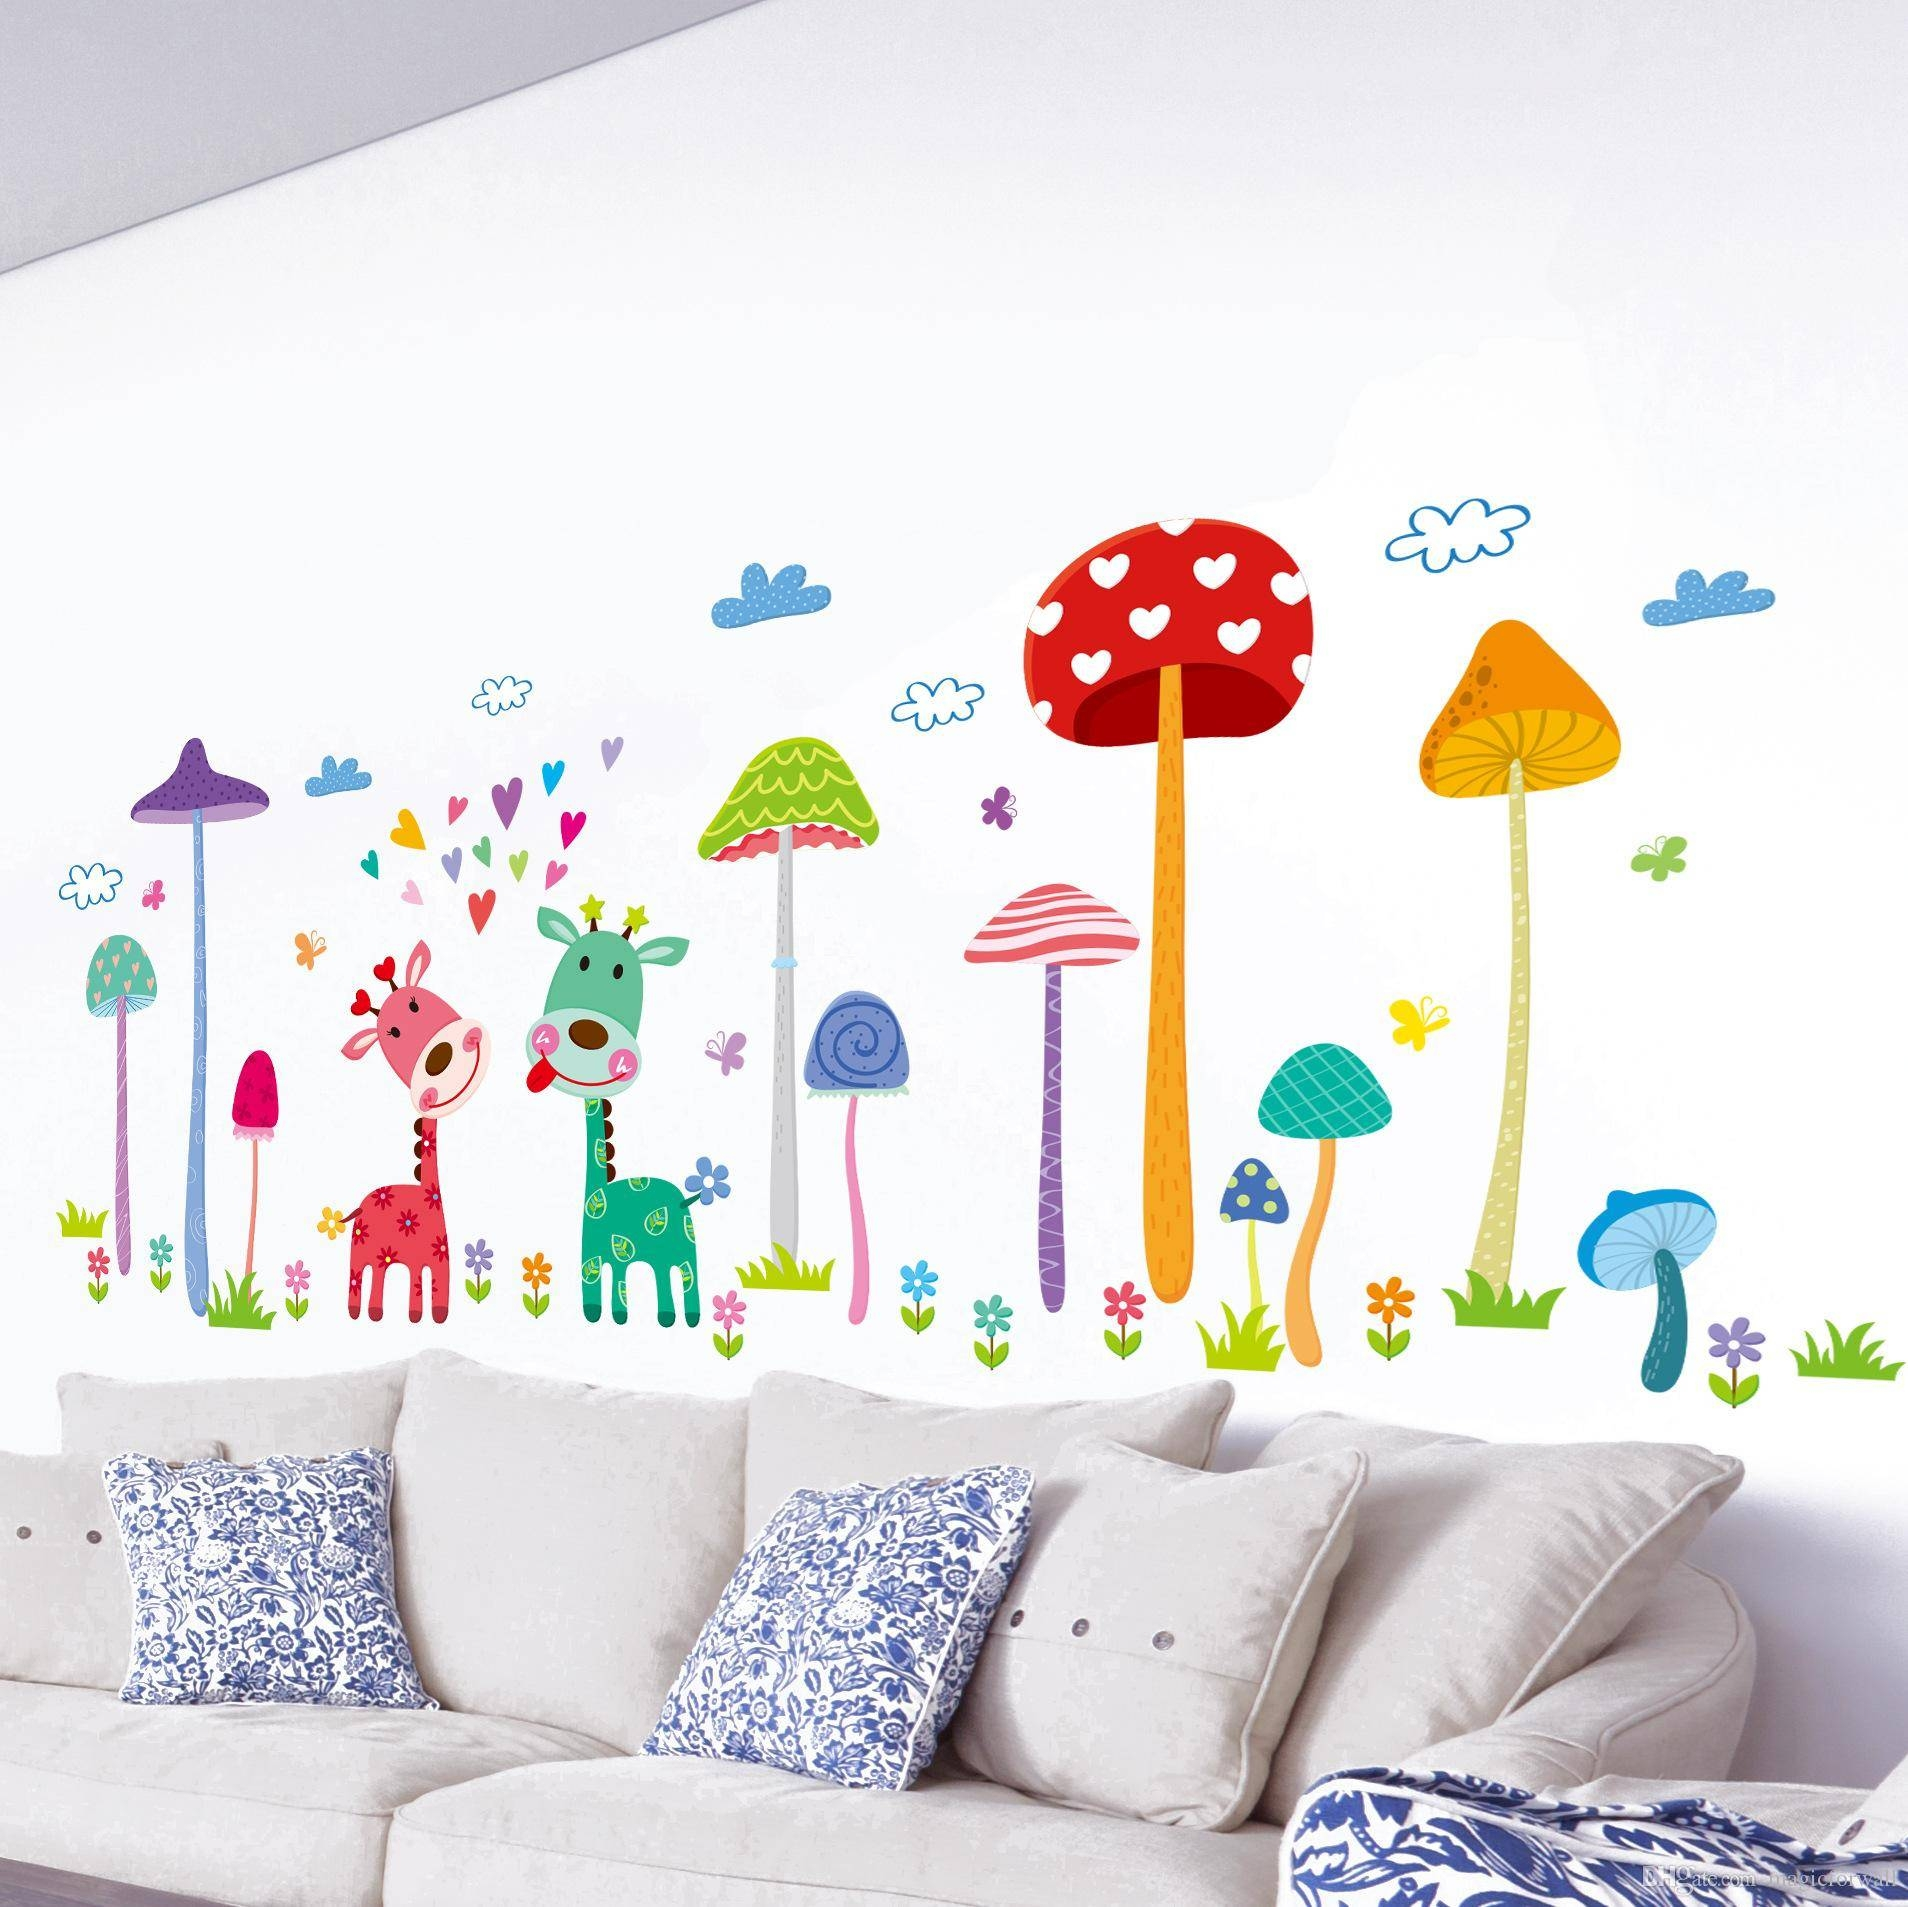 Forest Mushroom Deer Animals Home Wall Art Mural Decor Kids Babies In Current Nursery Animal Wall Art (Gallery 8 of 20)